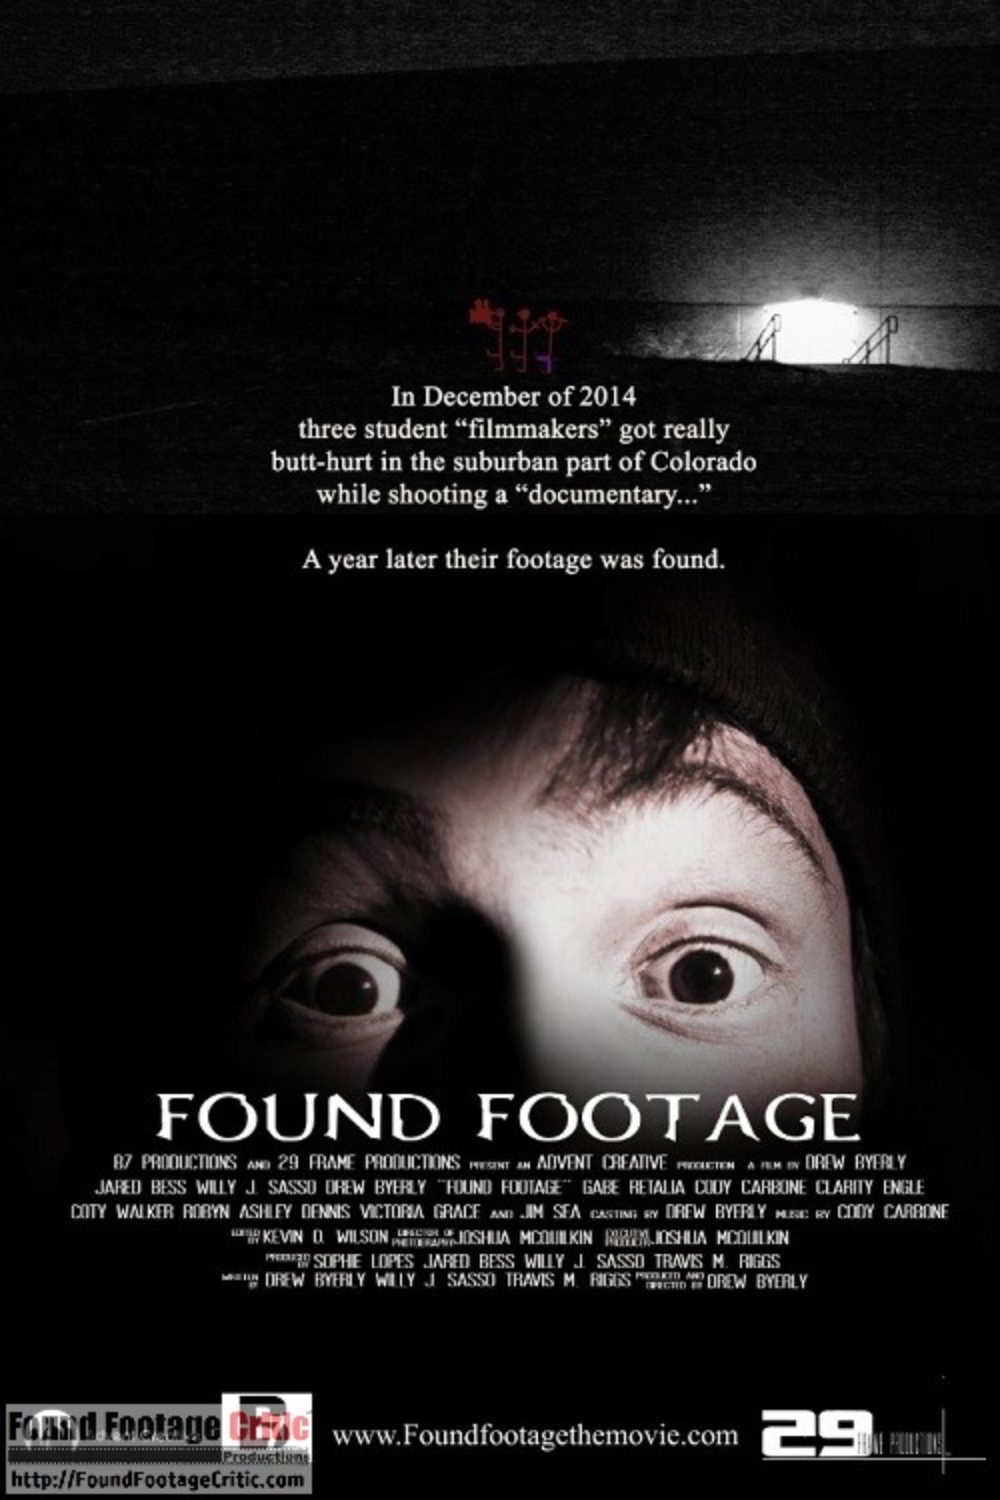 Found Footage Critic